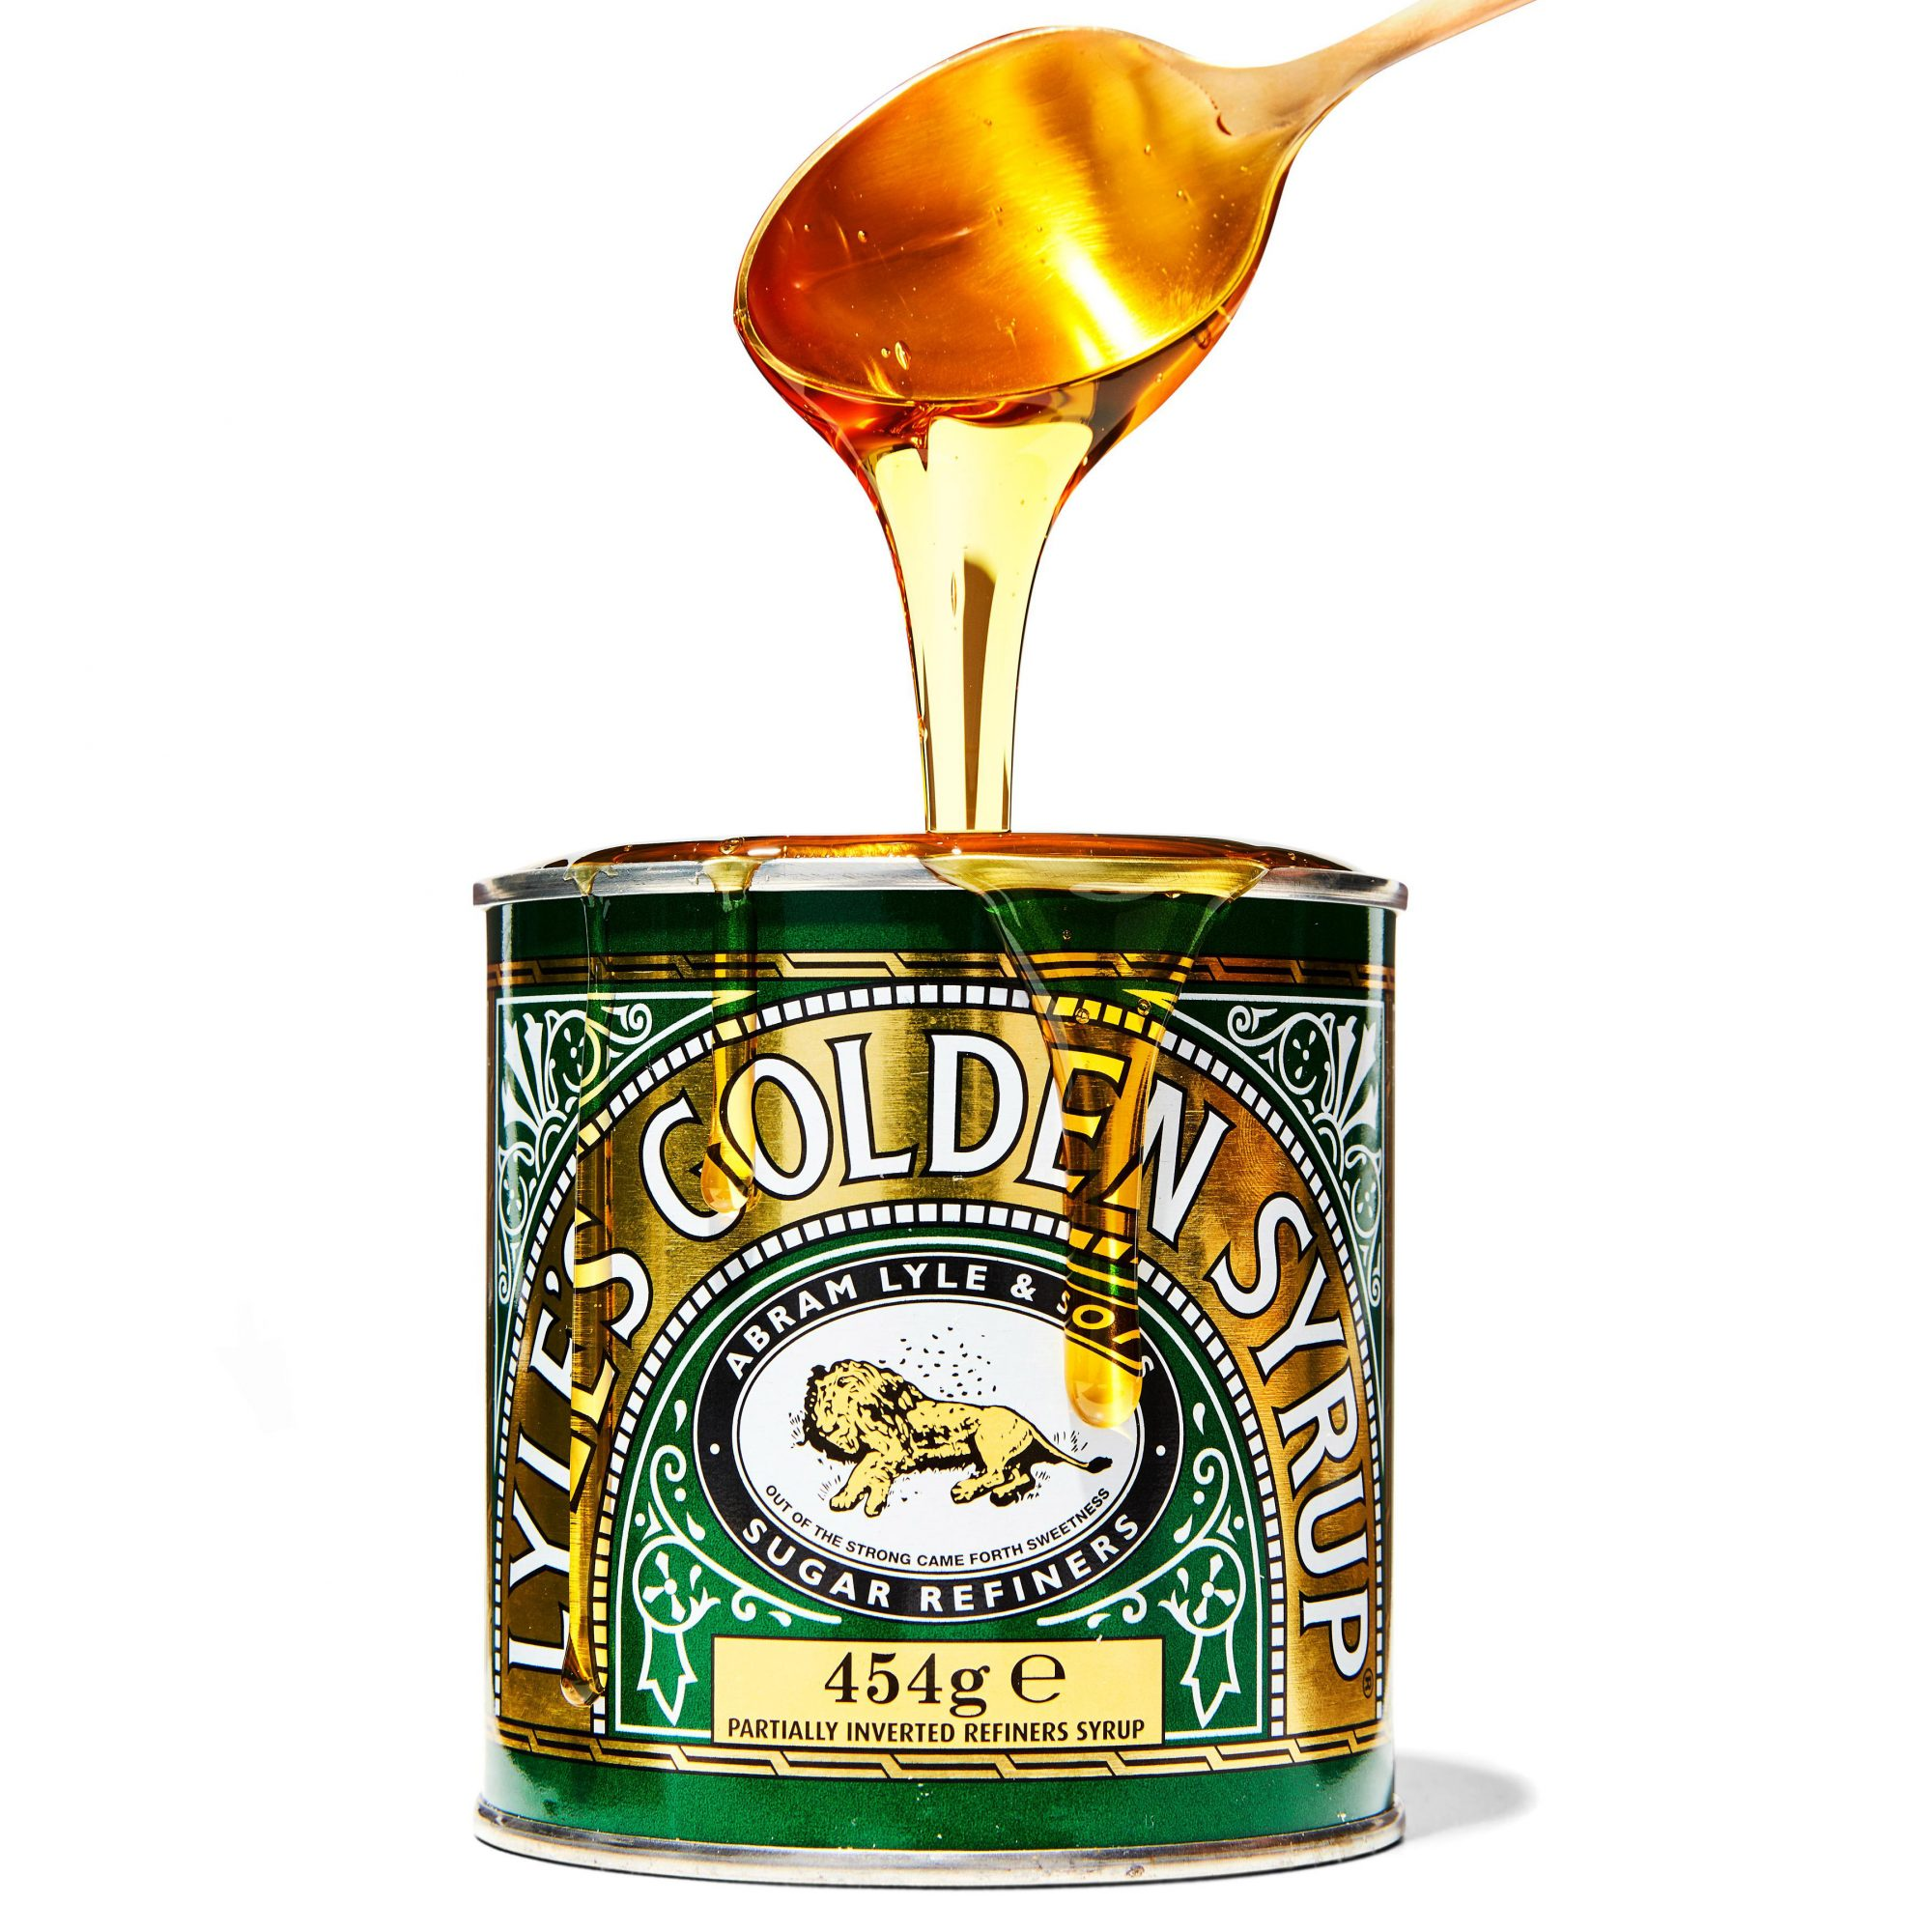 Lyle's Golden Syrup with spoon